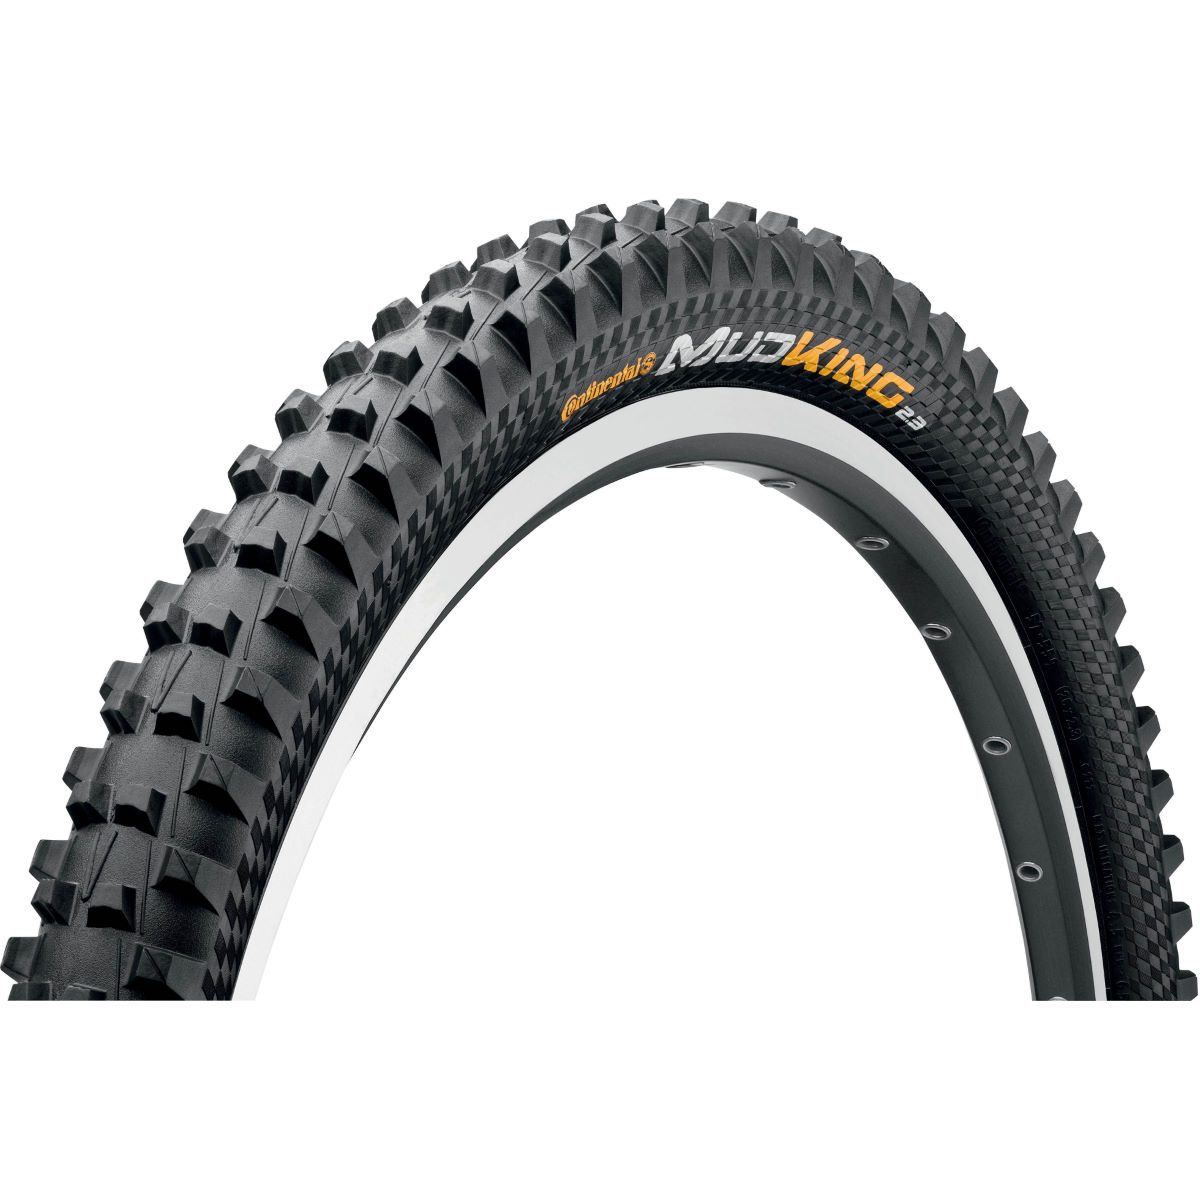 Continental Continental Mud King DH MTB Tyre – ProTection   Tyres